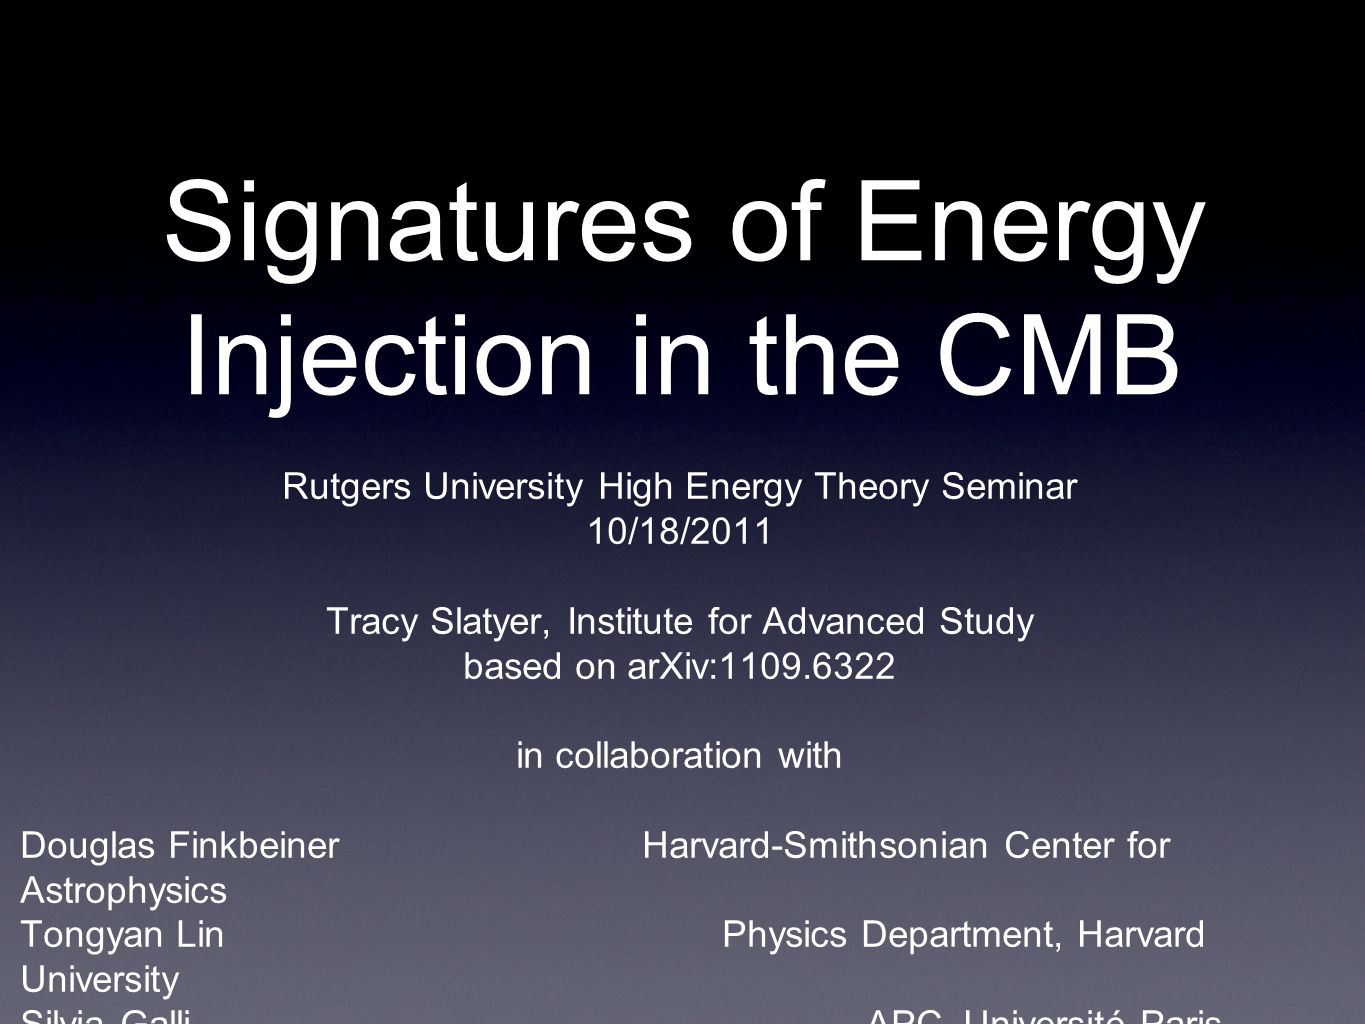 Signatures of Energy Injection in the CMB Rutgers University High Energy Theory Seminar 10/18/2011 Tracy Slatyer, Institute for Advanced Study based on arXiv:1109.6322 in collaboration with Douglas Finkbeiner Harvard-Smithsonian Center for Astrophysics Tongyan Lin Physics Department, Harvard University Silvia Galli APC, Université Paris Diderot Physics Department, Università di Roma La Sapienza